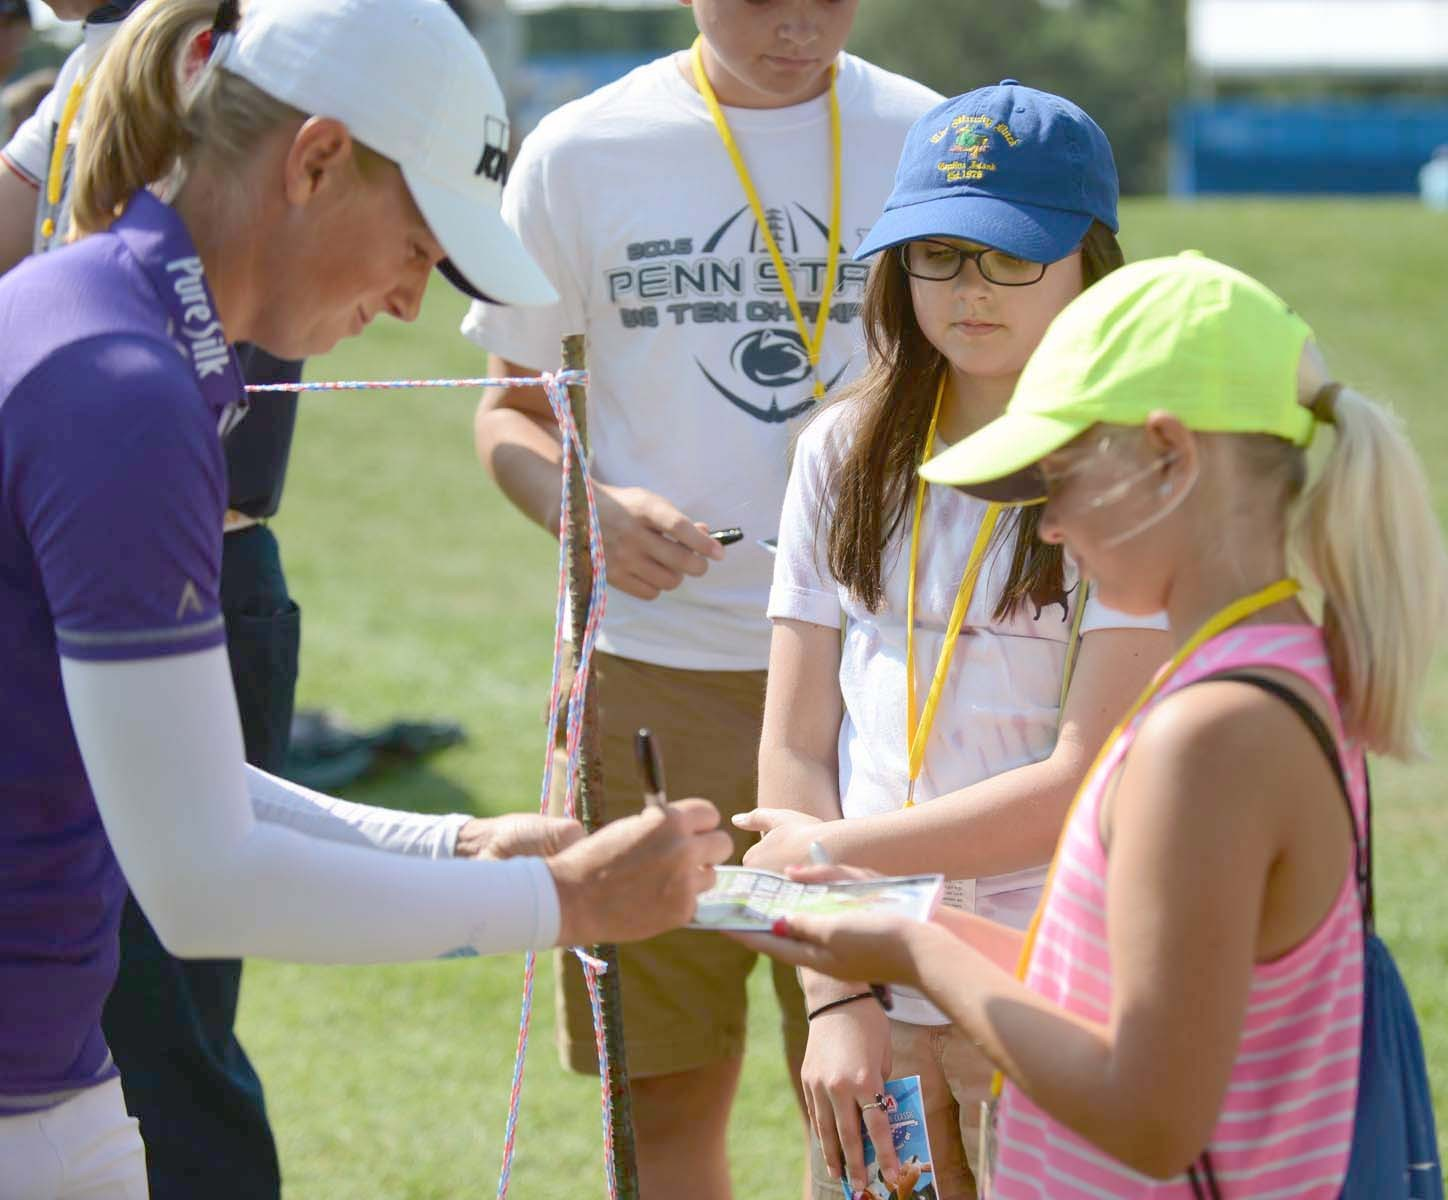 Toledo native and professional golfer Stacy Lewis signs an autograph while in town for the Marathon Classic in 2017. (Photo courtesy Marathon Classic)